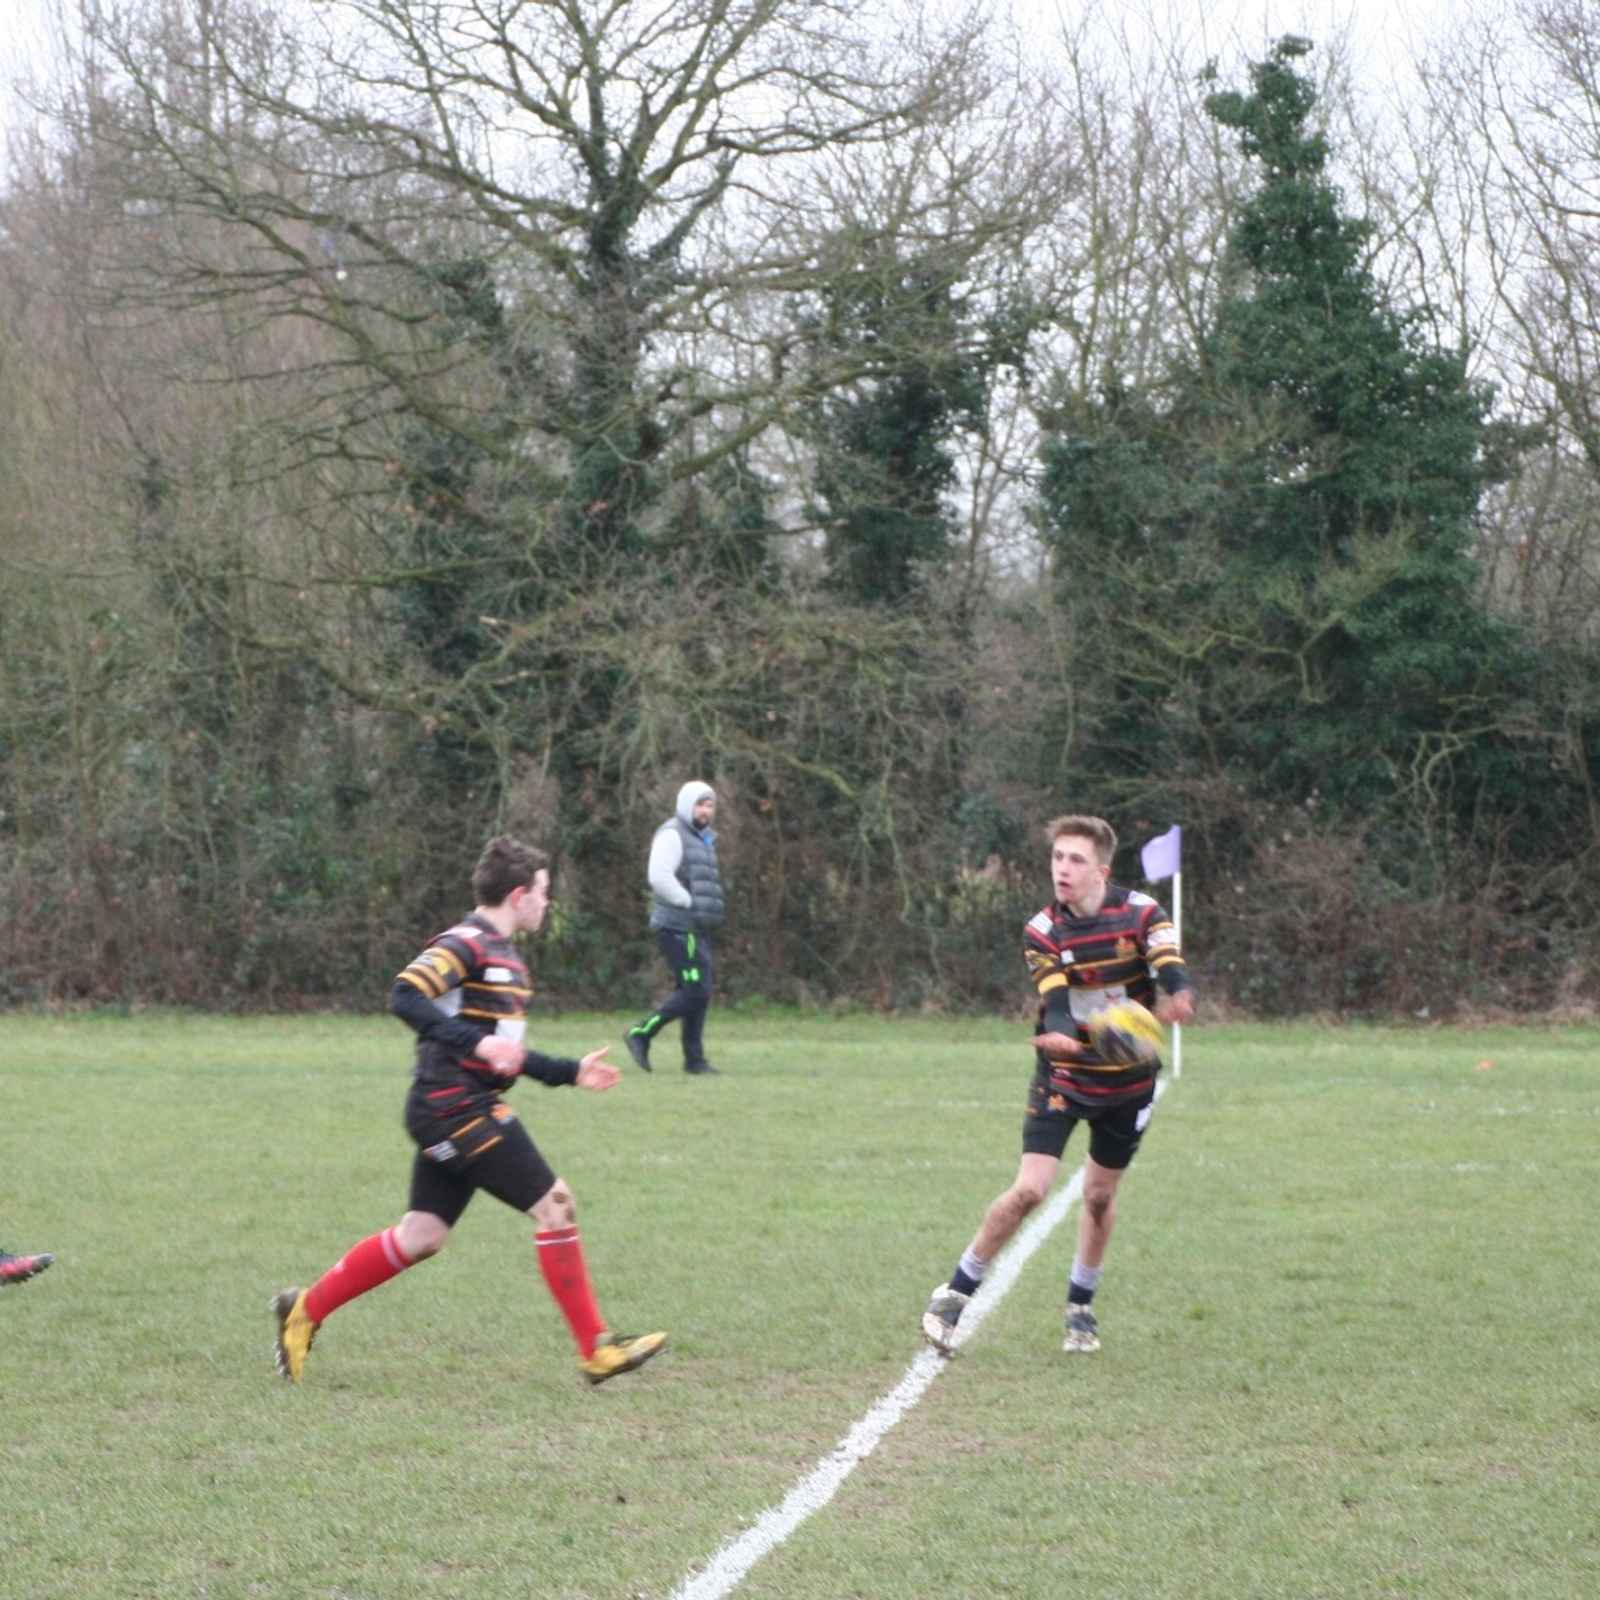 Skolars prove too strong once again for the Dragons.